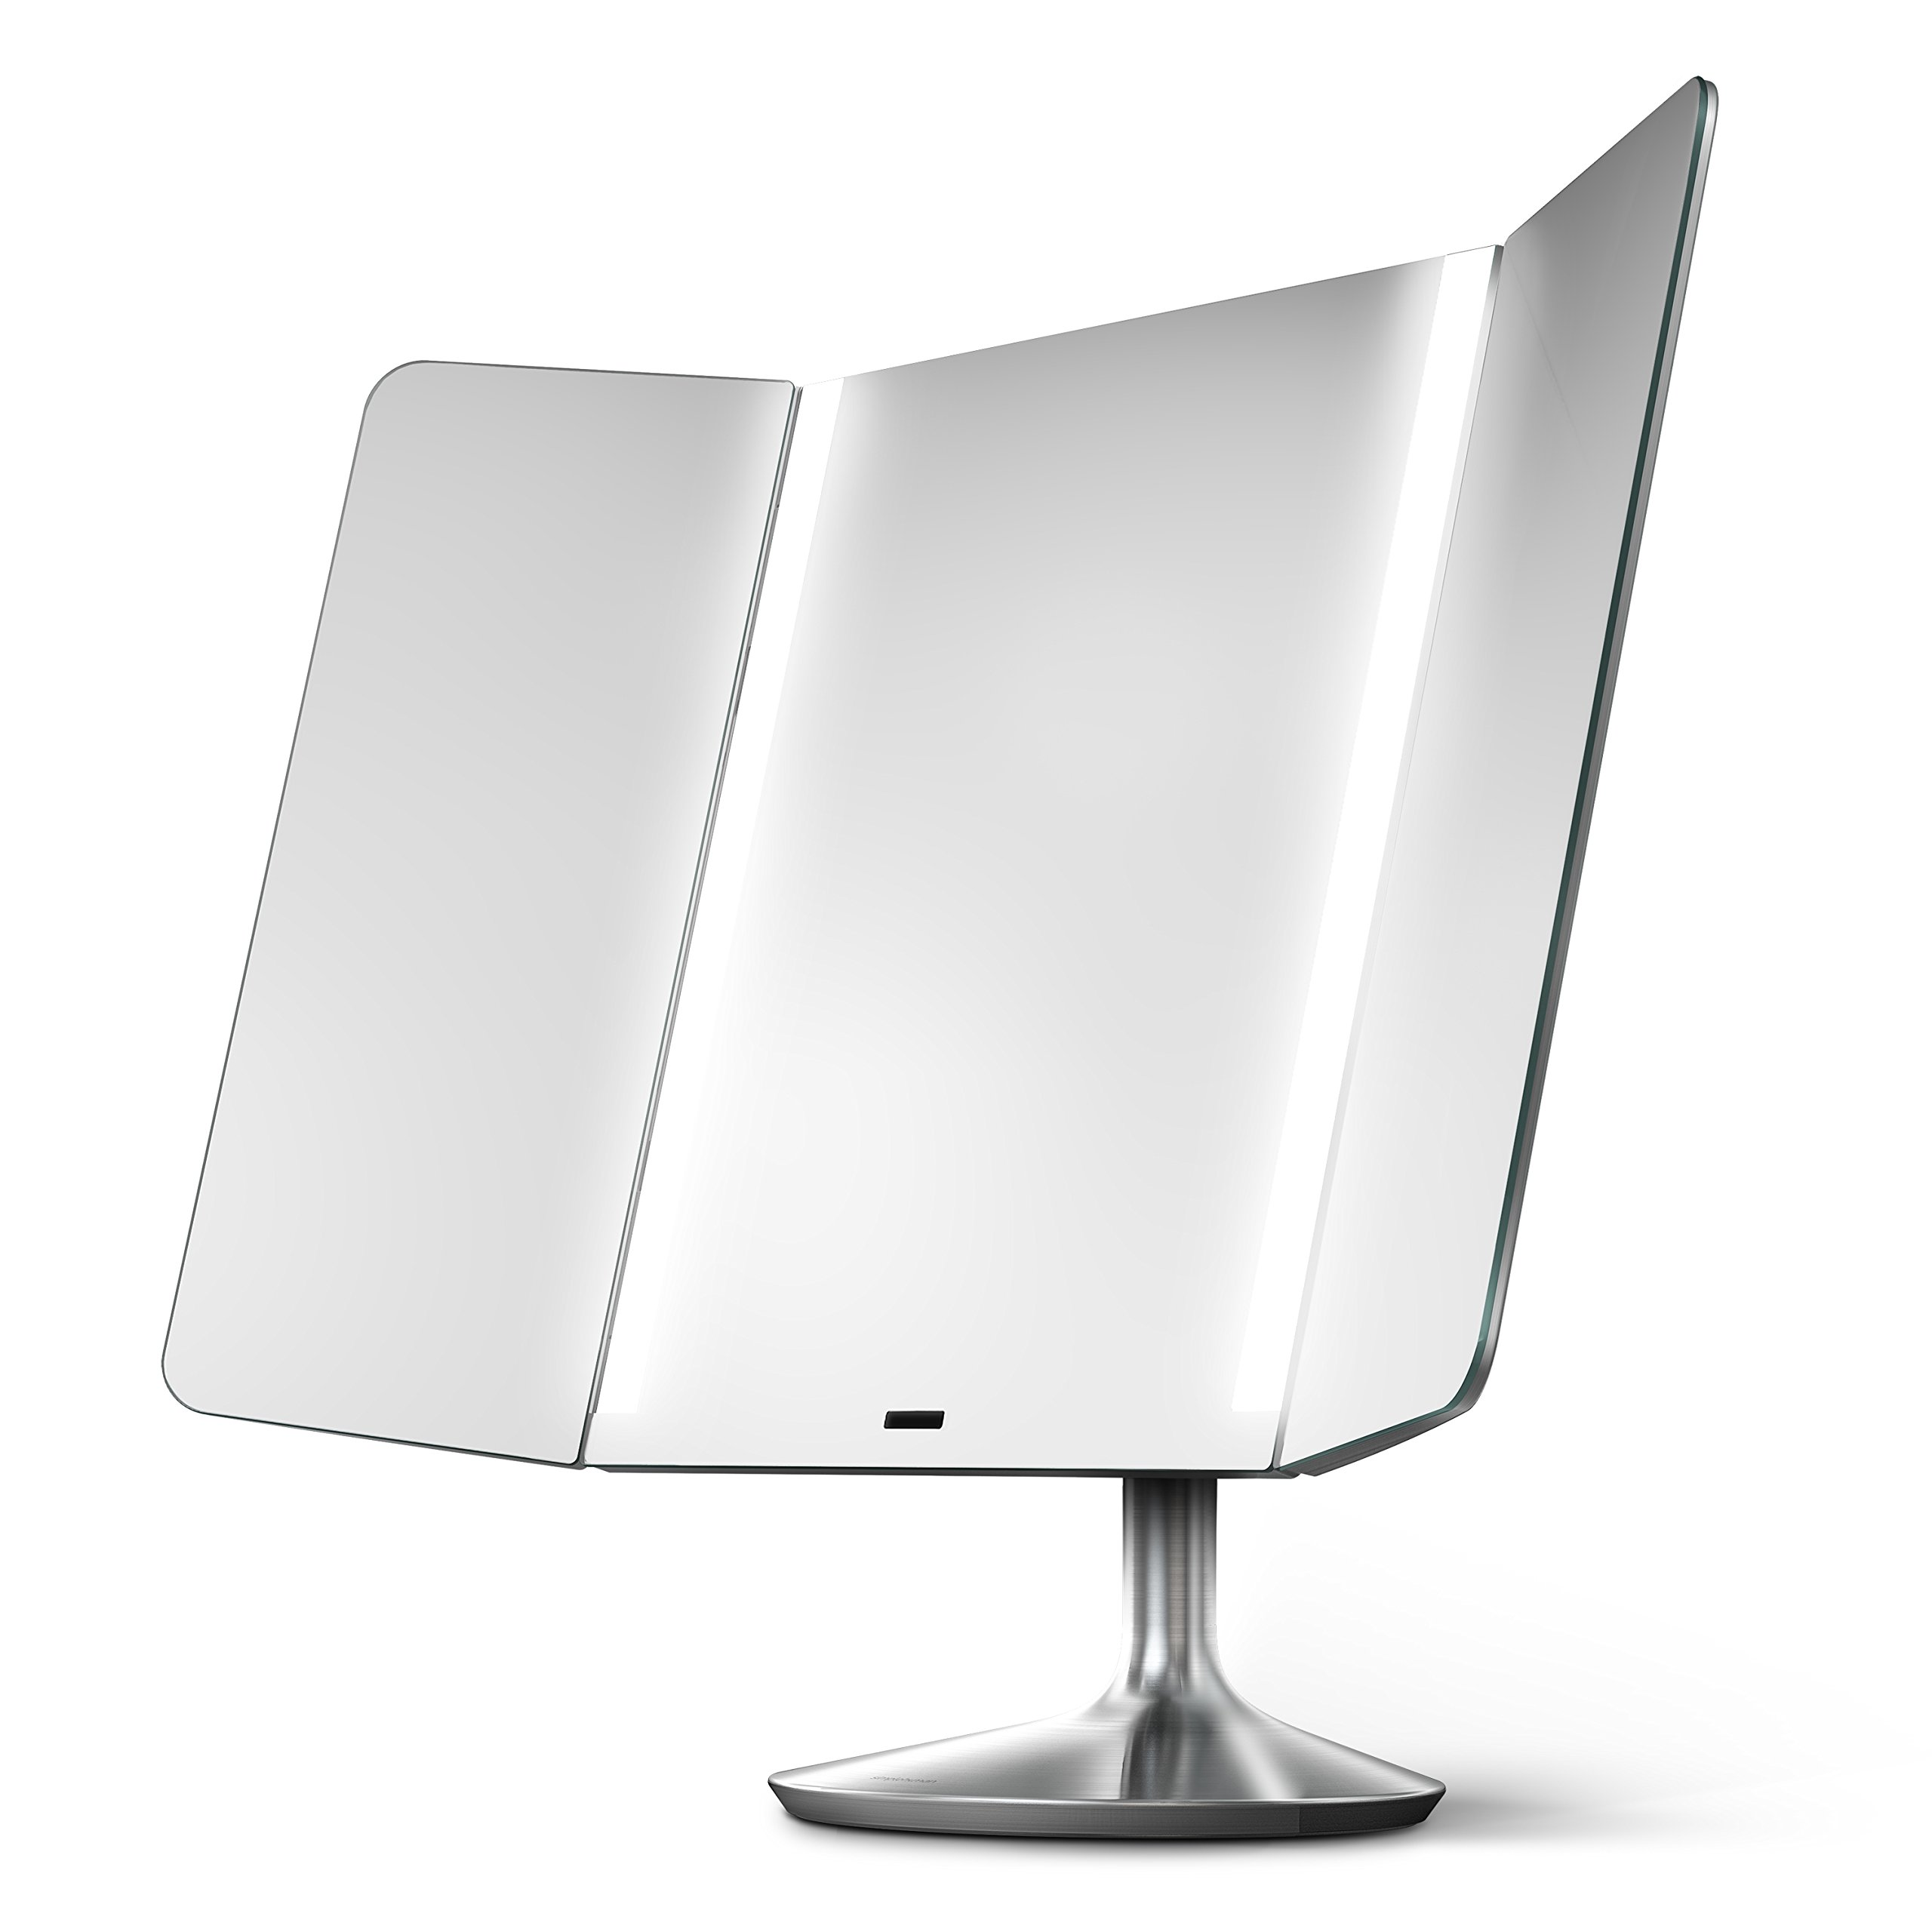 simplehuman Sensor Mirror Pro Wide View, Lighted Vanity Mirror, 1x Magnification, Adjustable Color Temperature, Wifi-Enabled by simplehuman